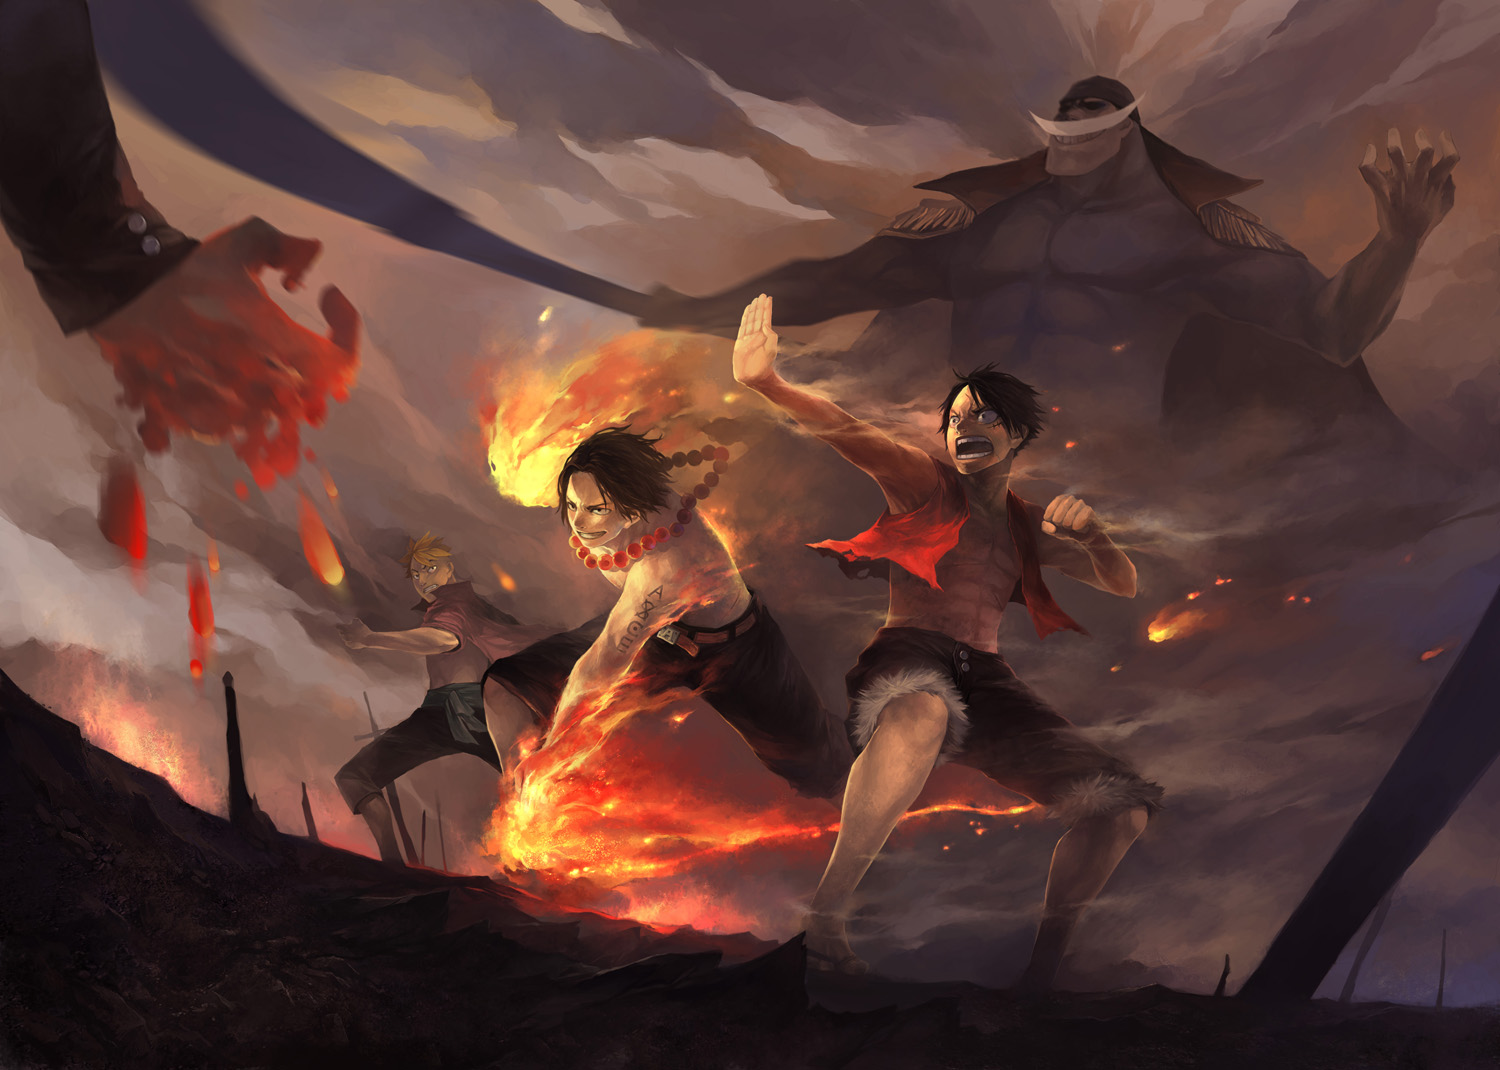 Fighting style monkey d luffy in anime one piece story of monkey d